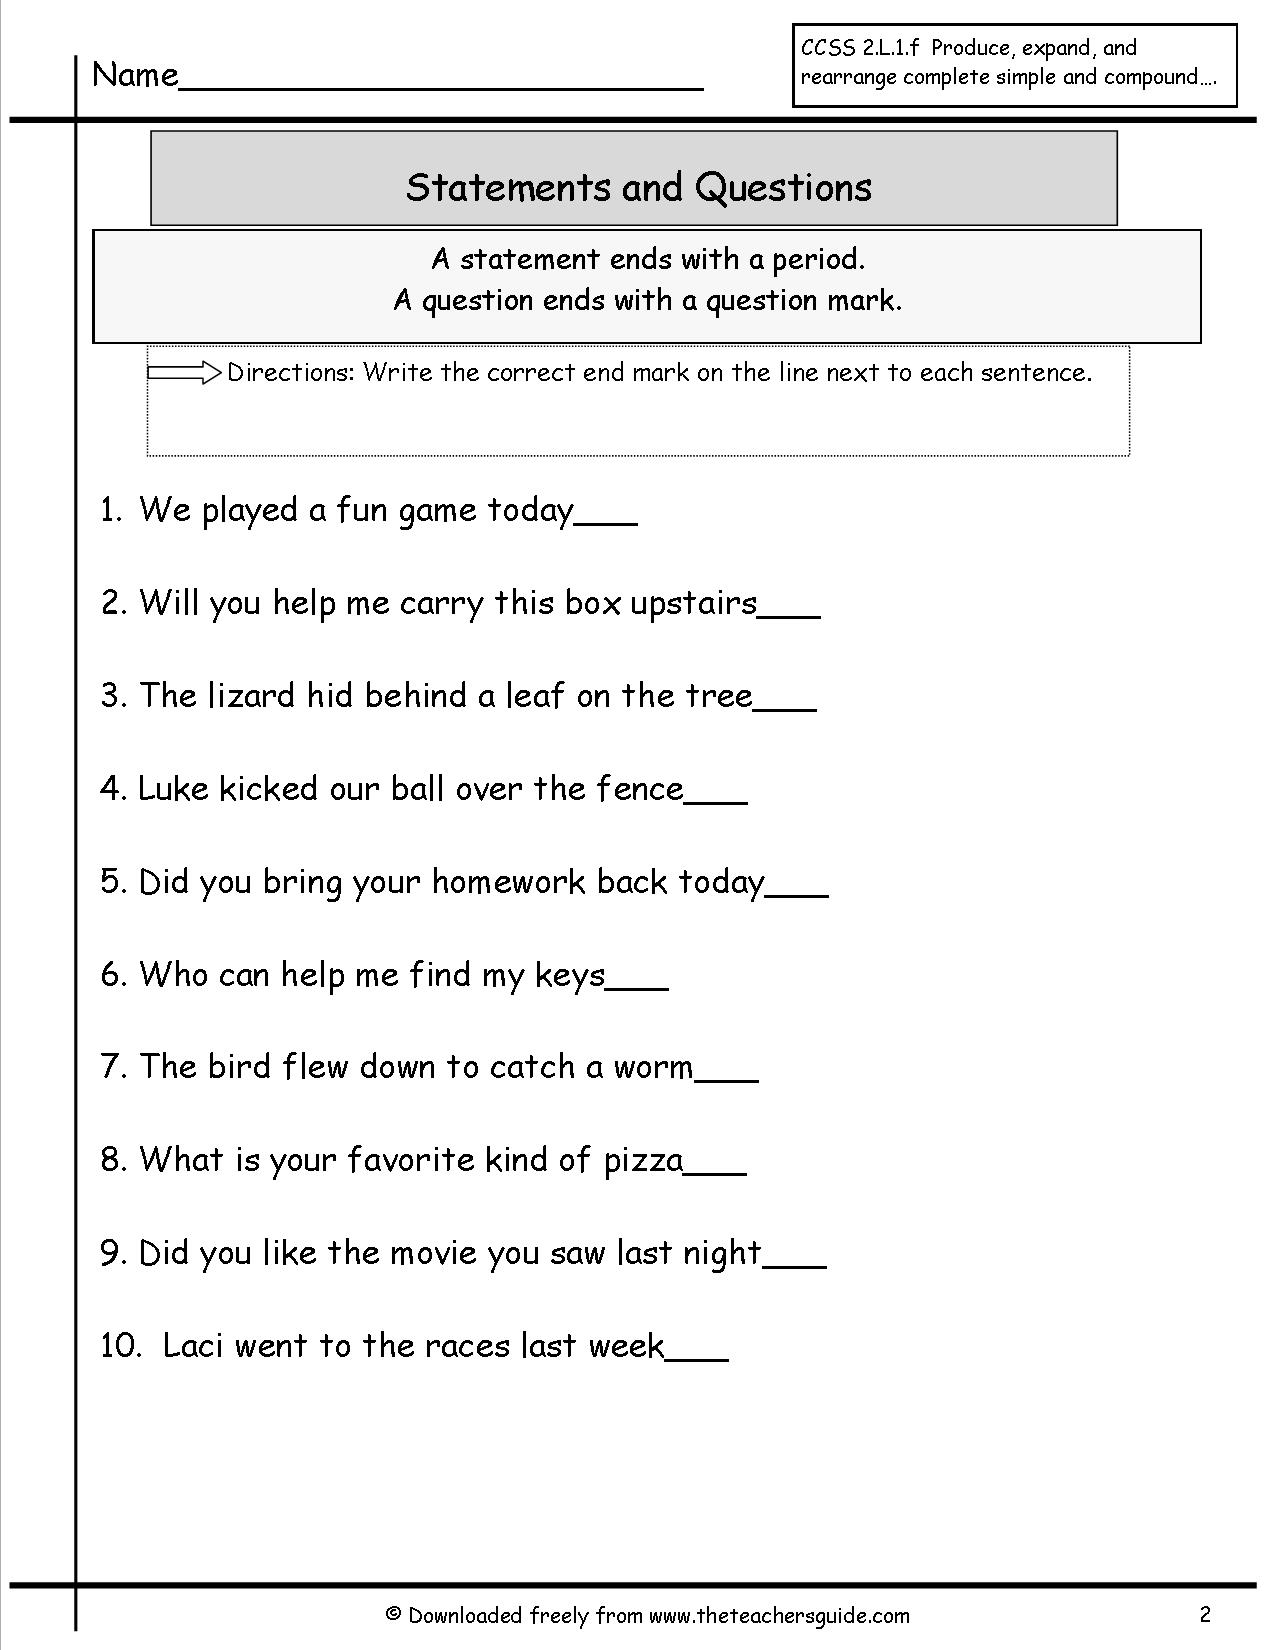 15 Best Images Of 2nd Grade Sentence Correction Worksheets